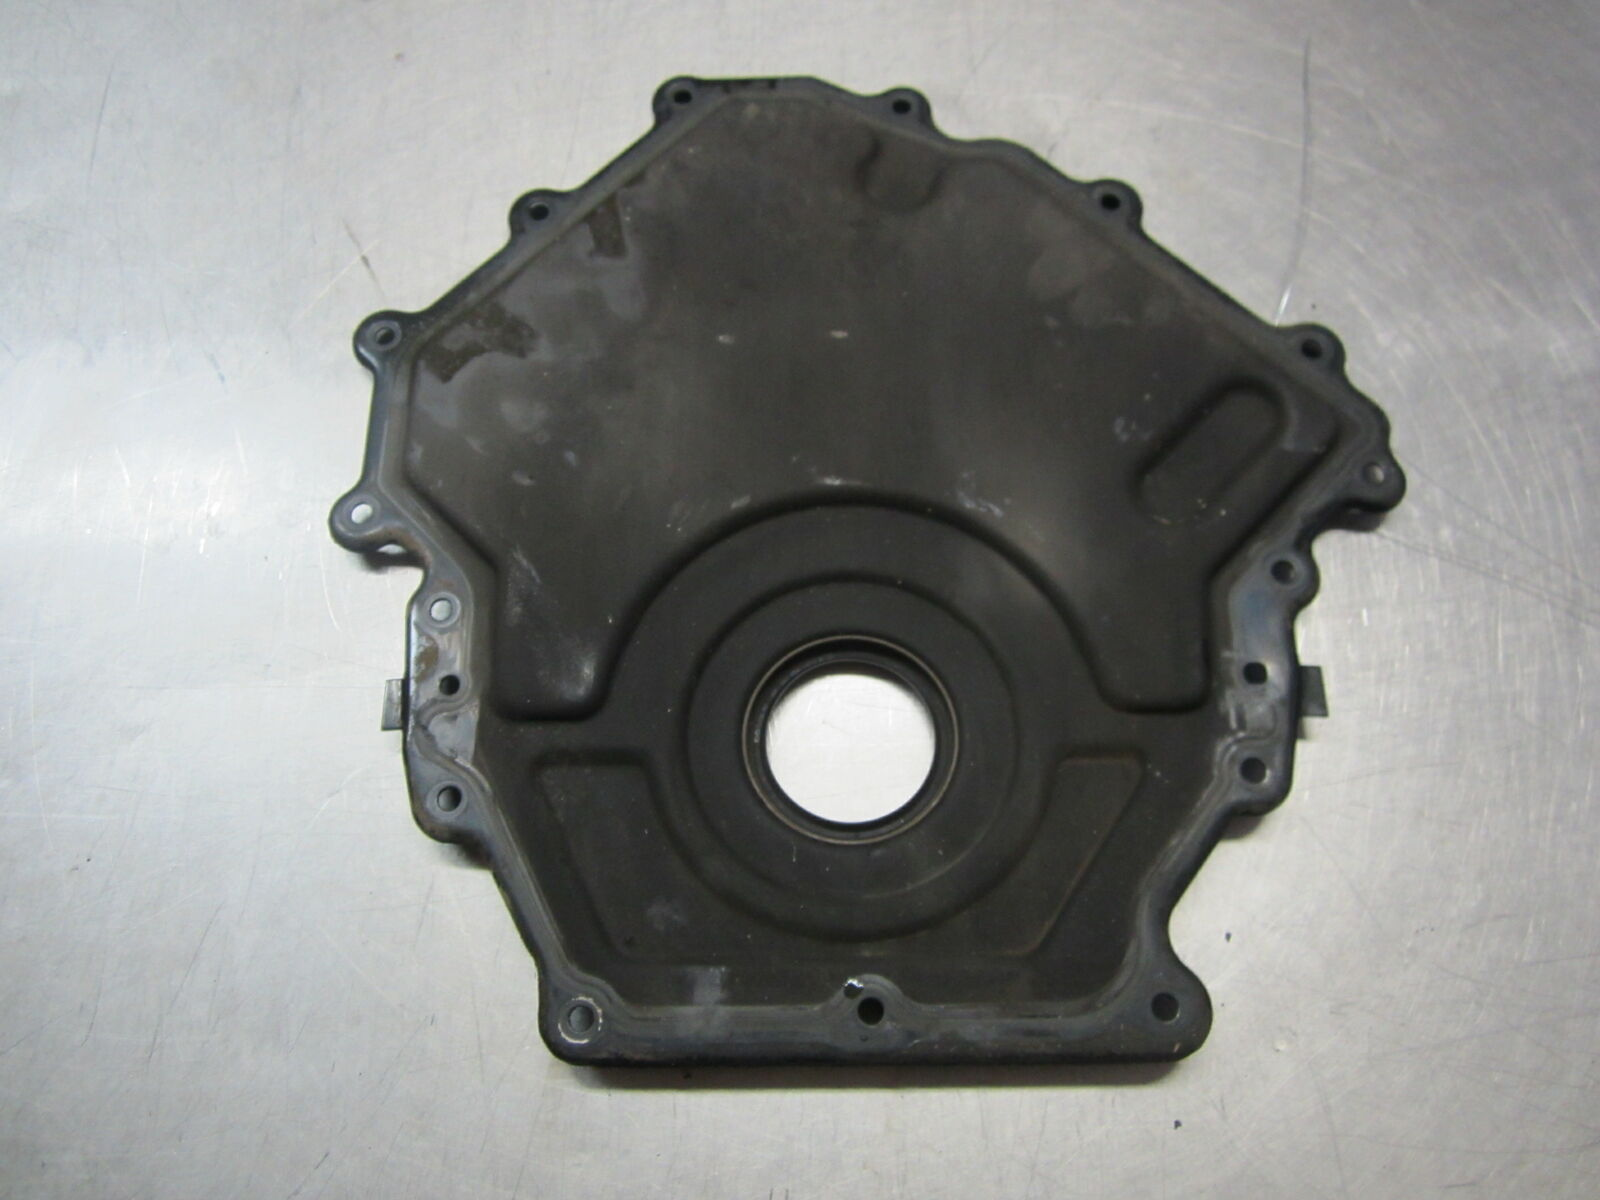 42P035 Engine Timing Cover 2001 Cadillac DeVille 4.6  - $29.00